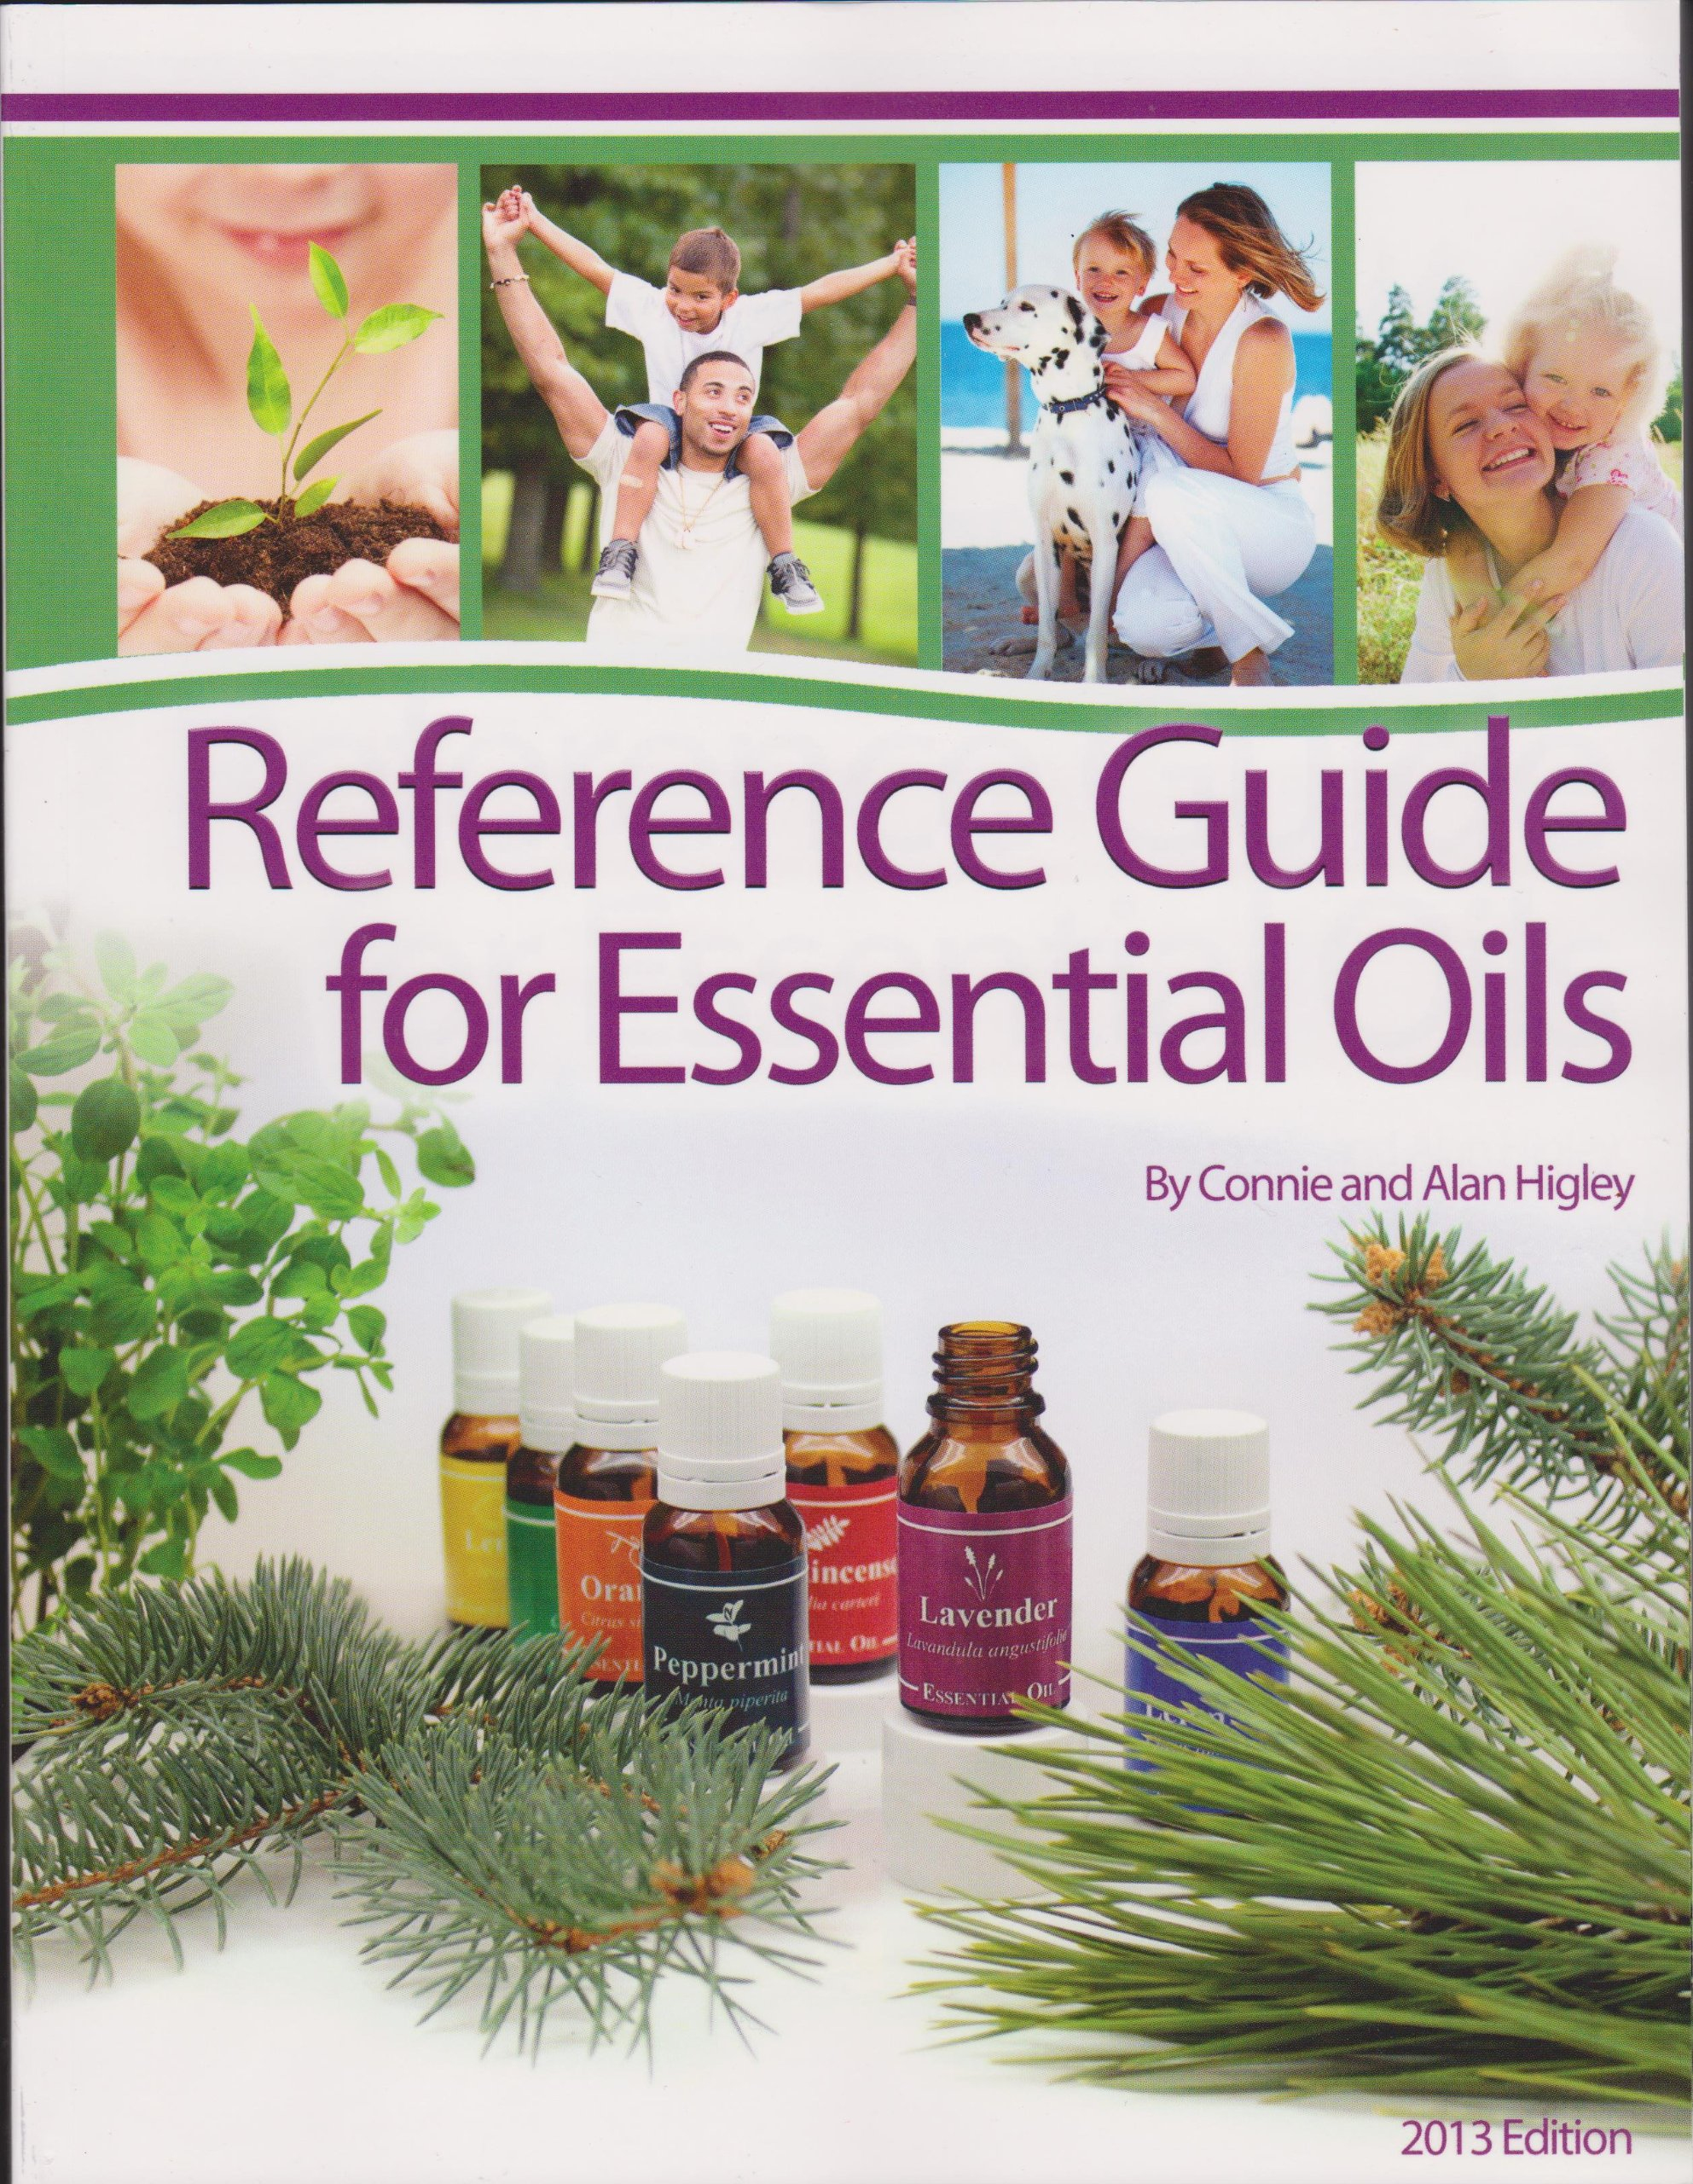 reference guide for essential oils soft cover 2013 connie and alan rh amazon com guide to essential oils pdf guide to essential oils pdf